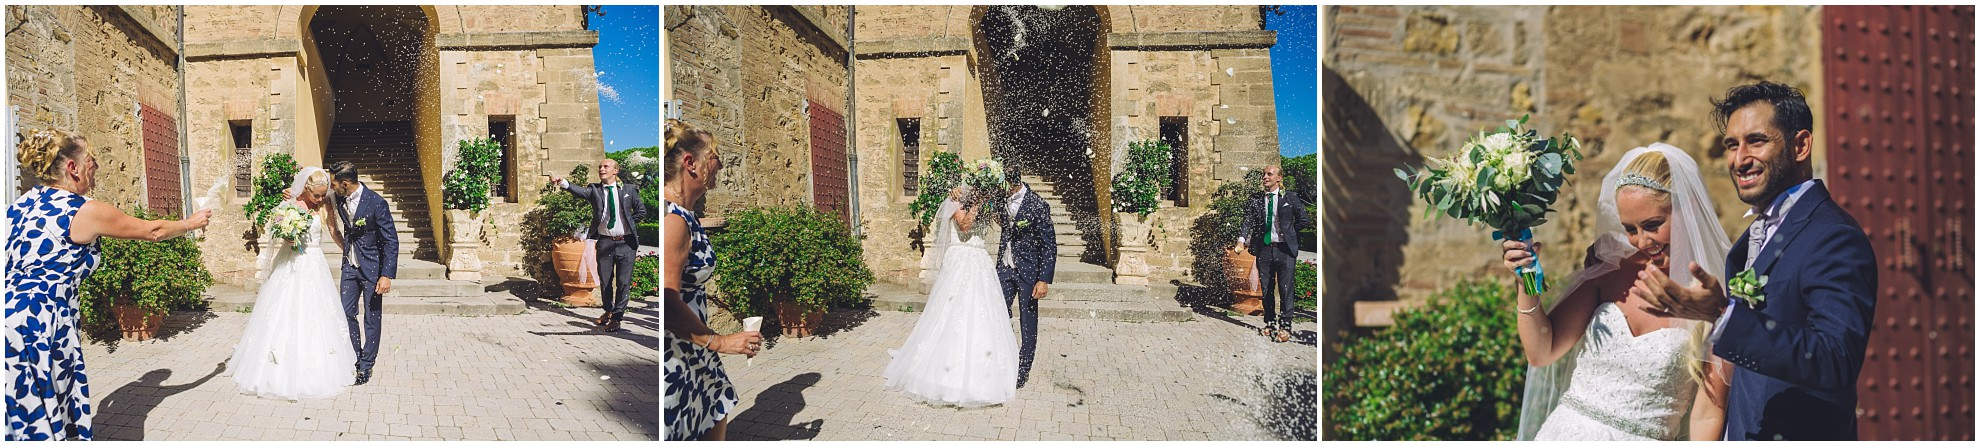 tuscany-wedding-photographer-castiglioncello-0066